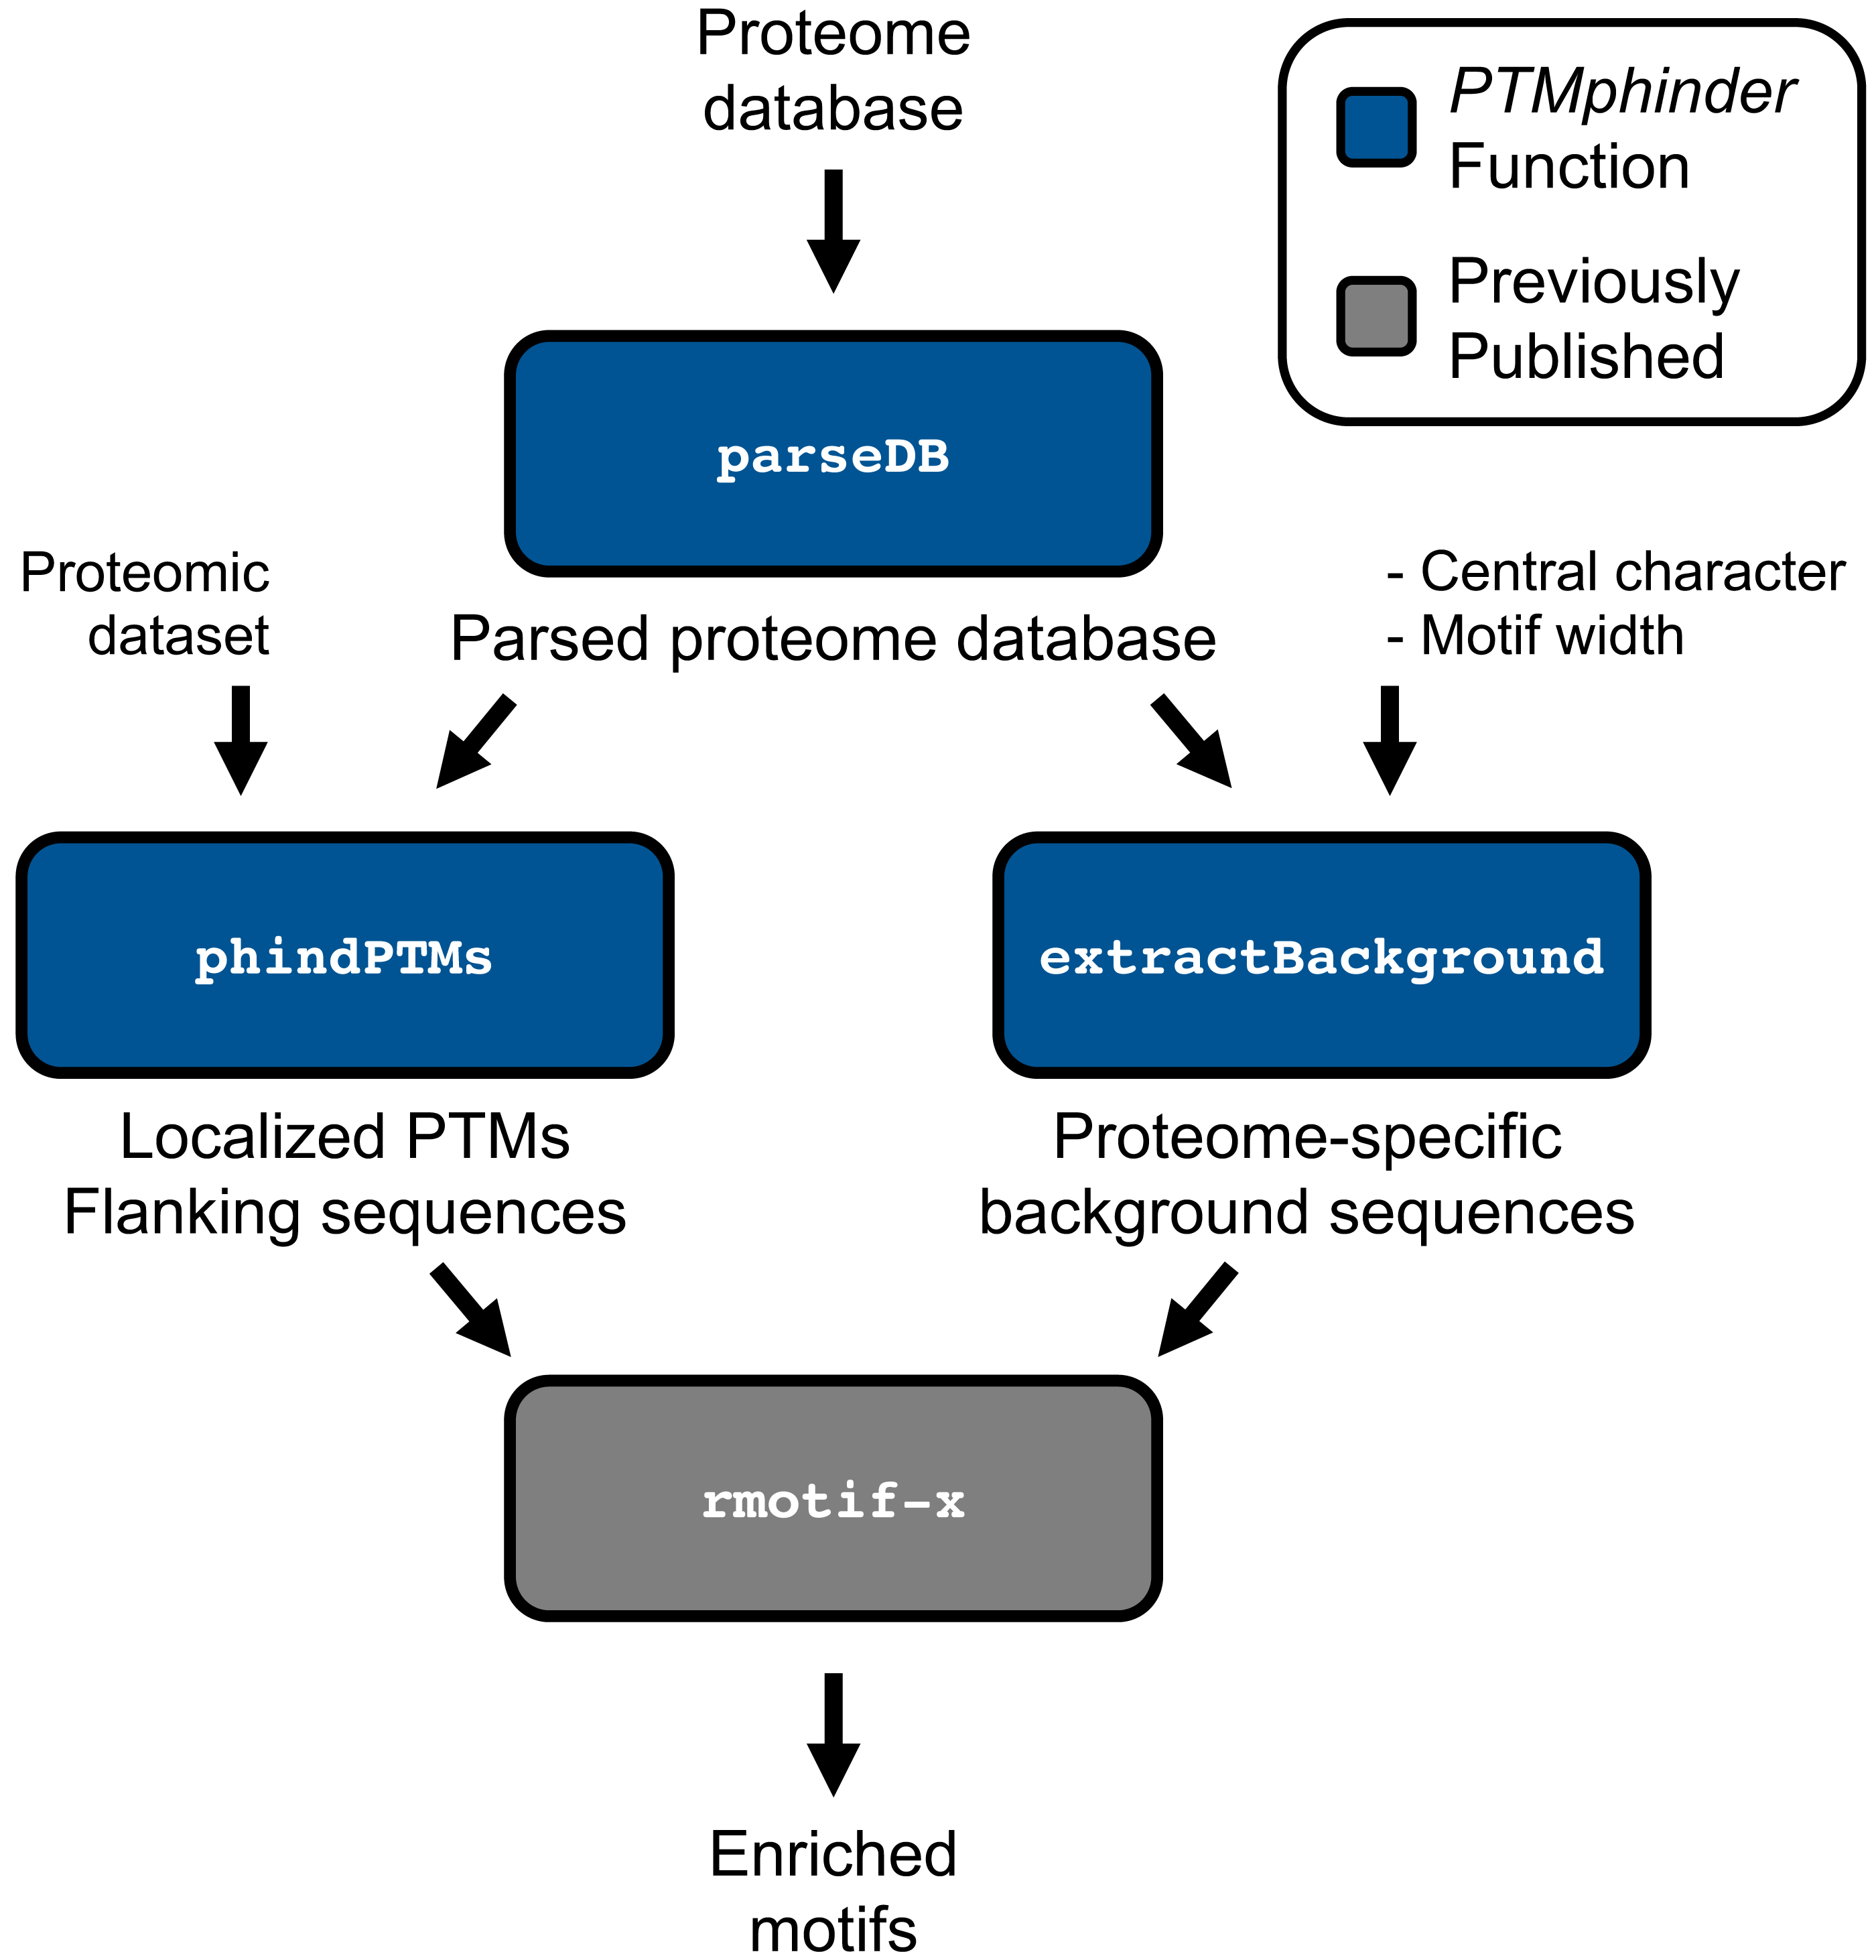 PTMphinder: an R package for PTM site localization and motif